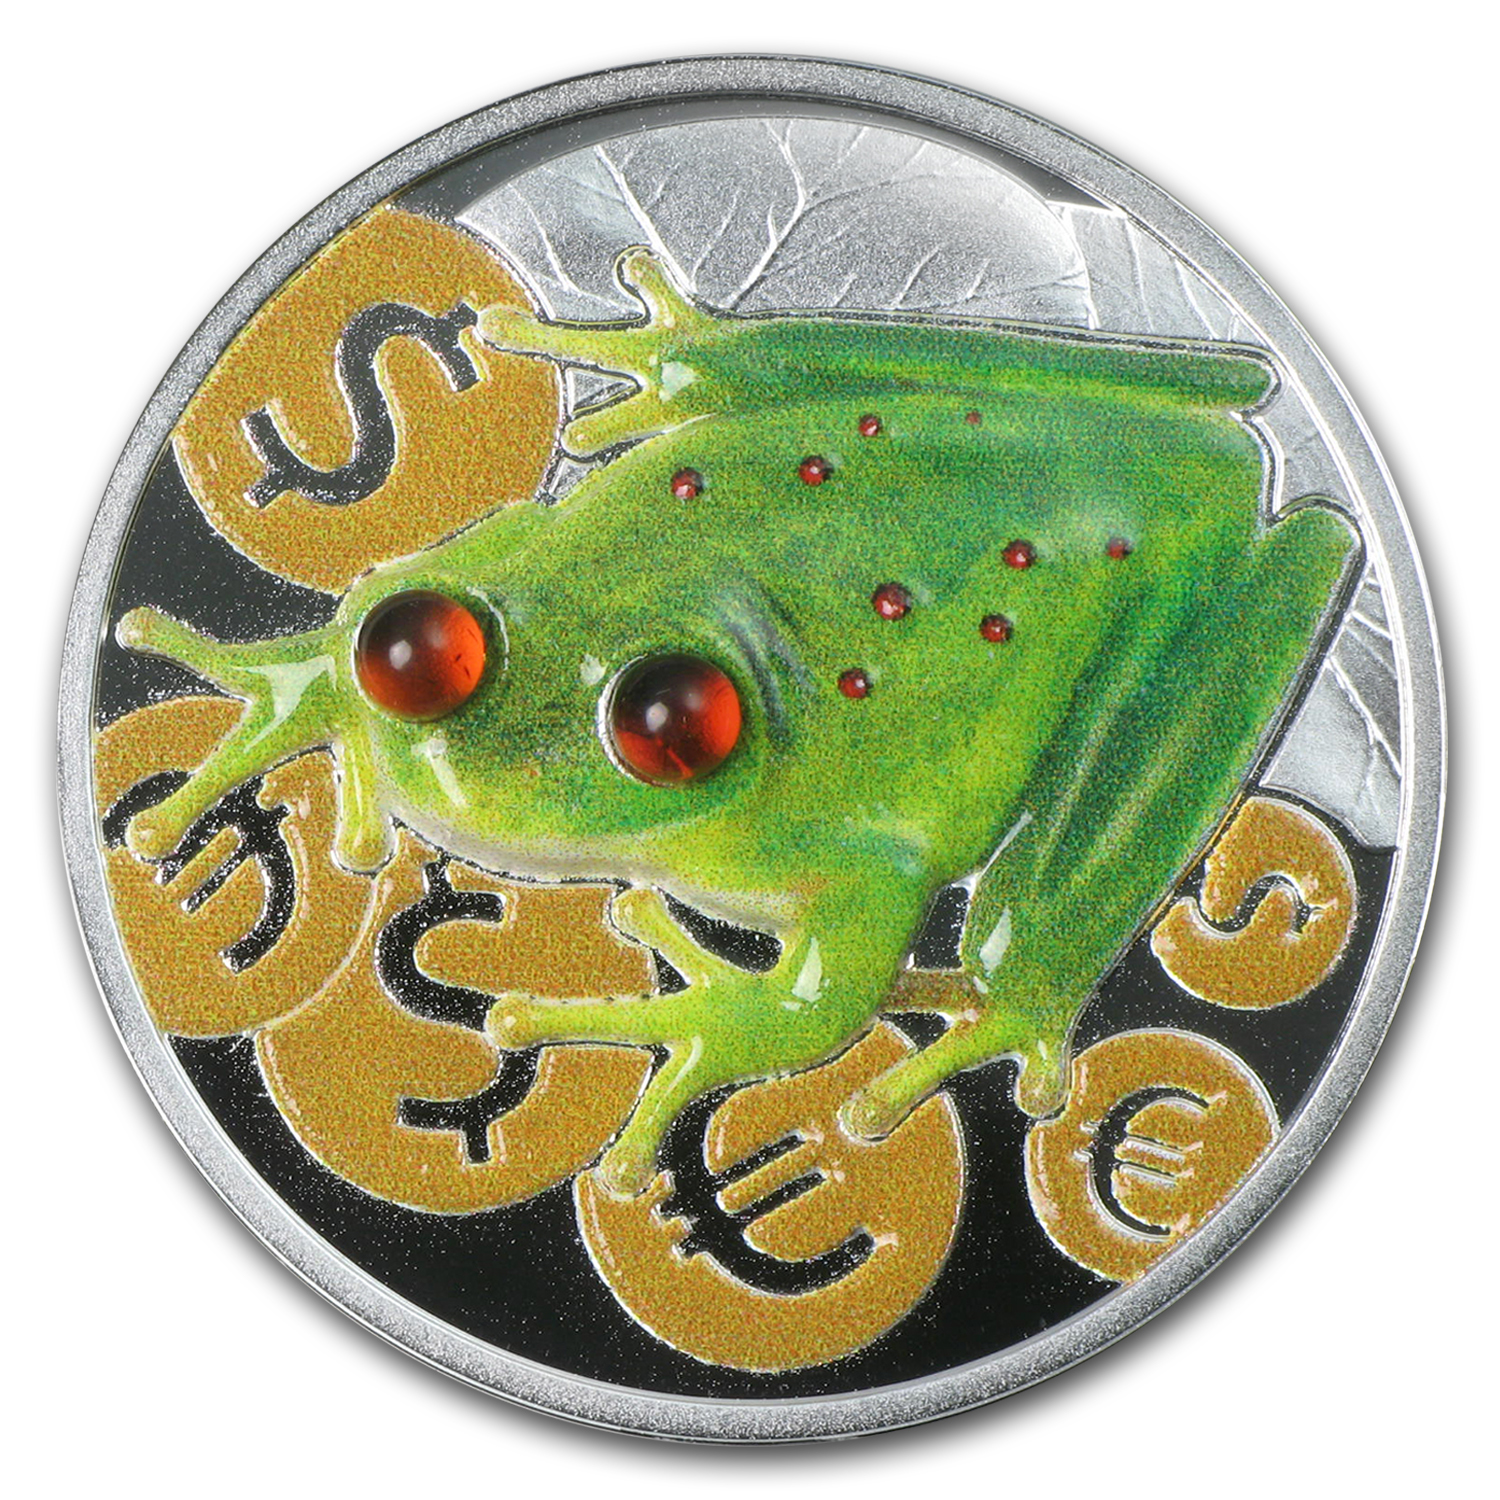 2015 Niue 1 oz Silver Money Frog